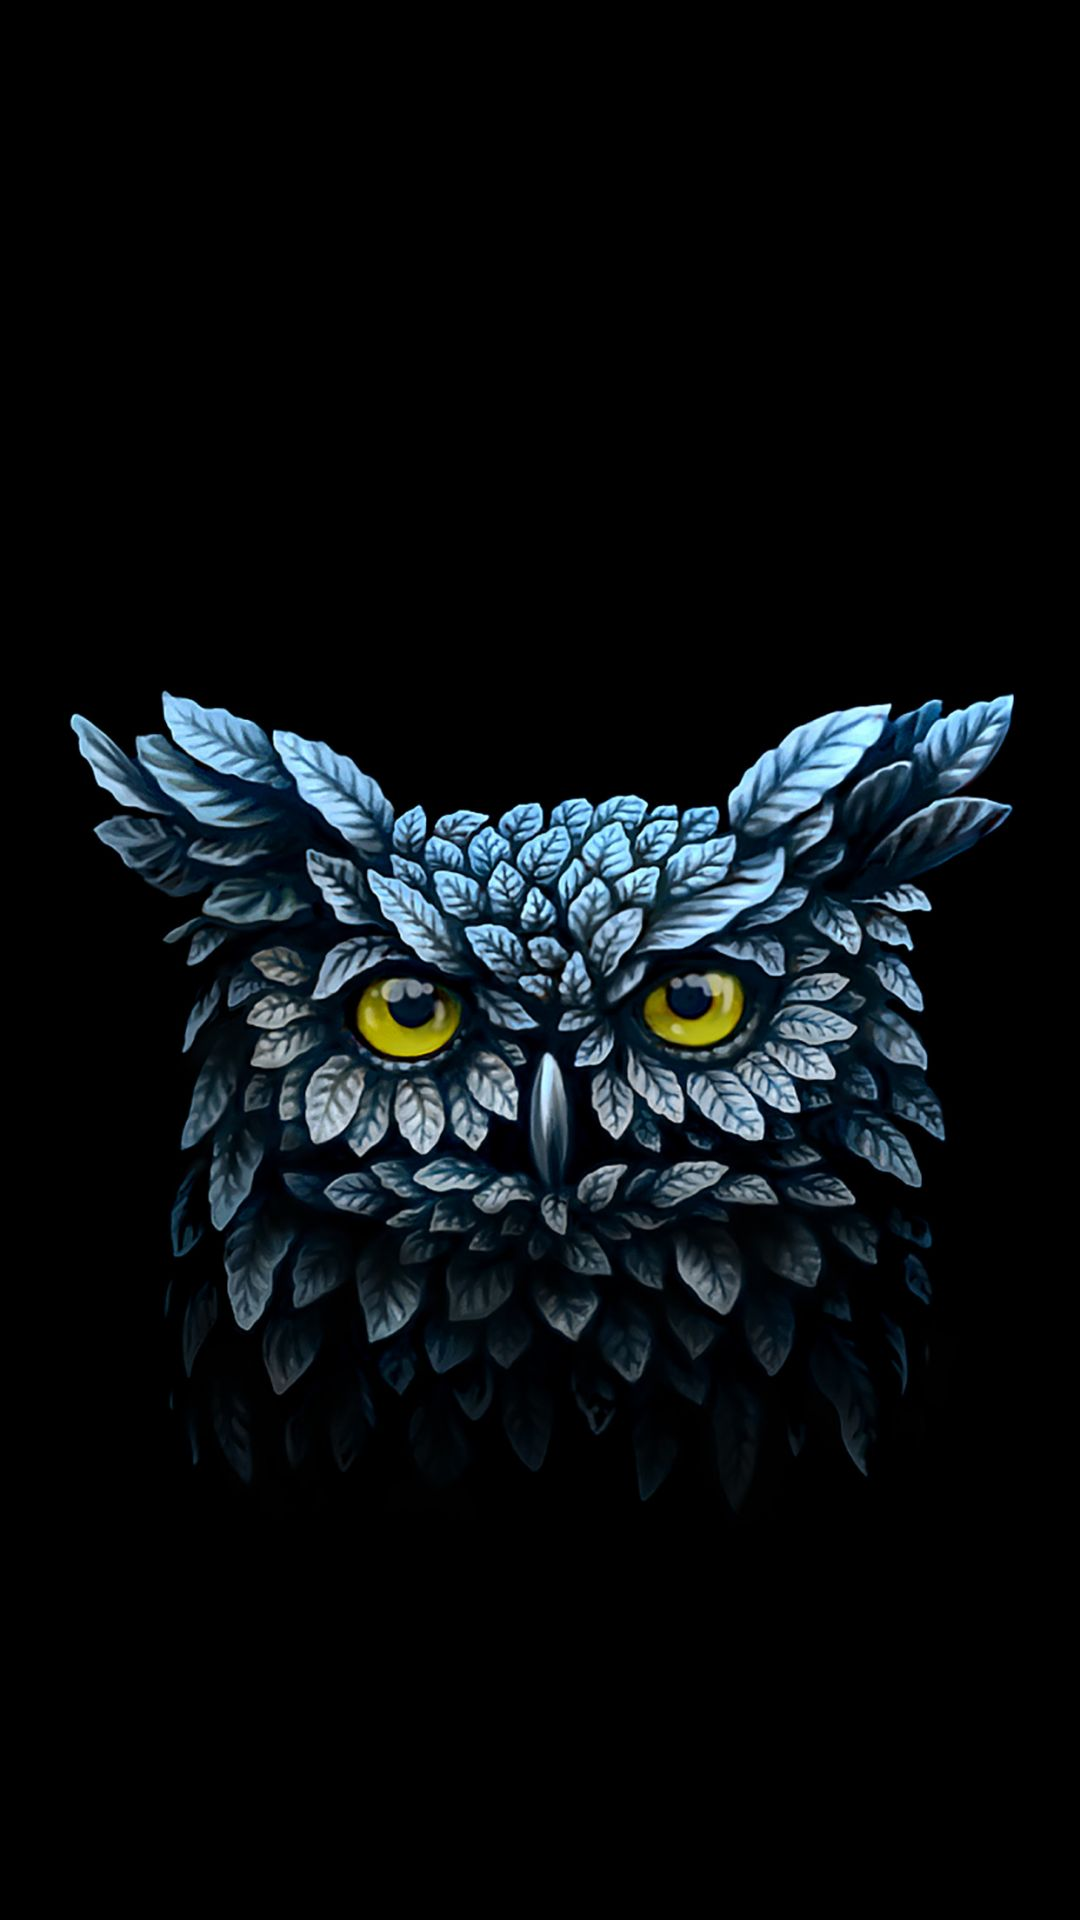 Owl iphone - Android, iPhone, Desktop HD Backgrounds / Wallpapers (1080p, 4k) (436368) - Animals / Birds